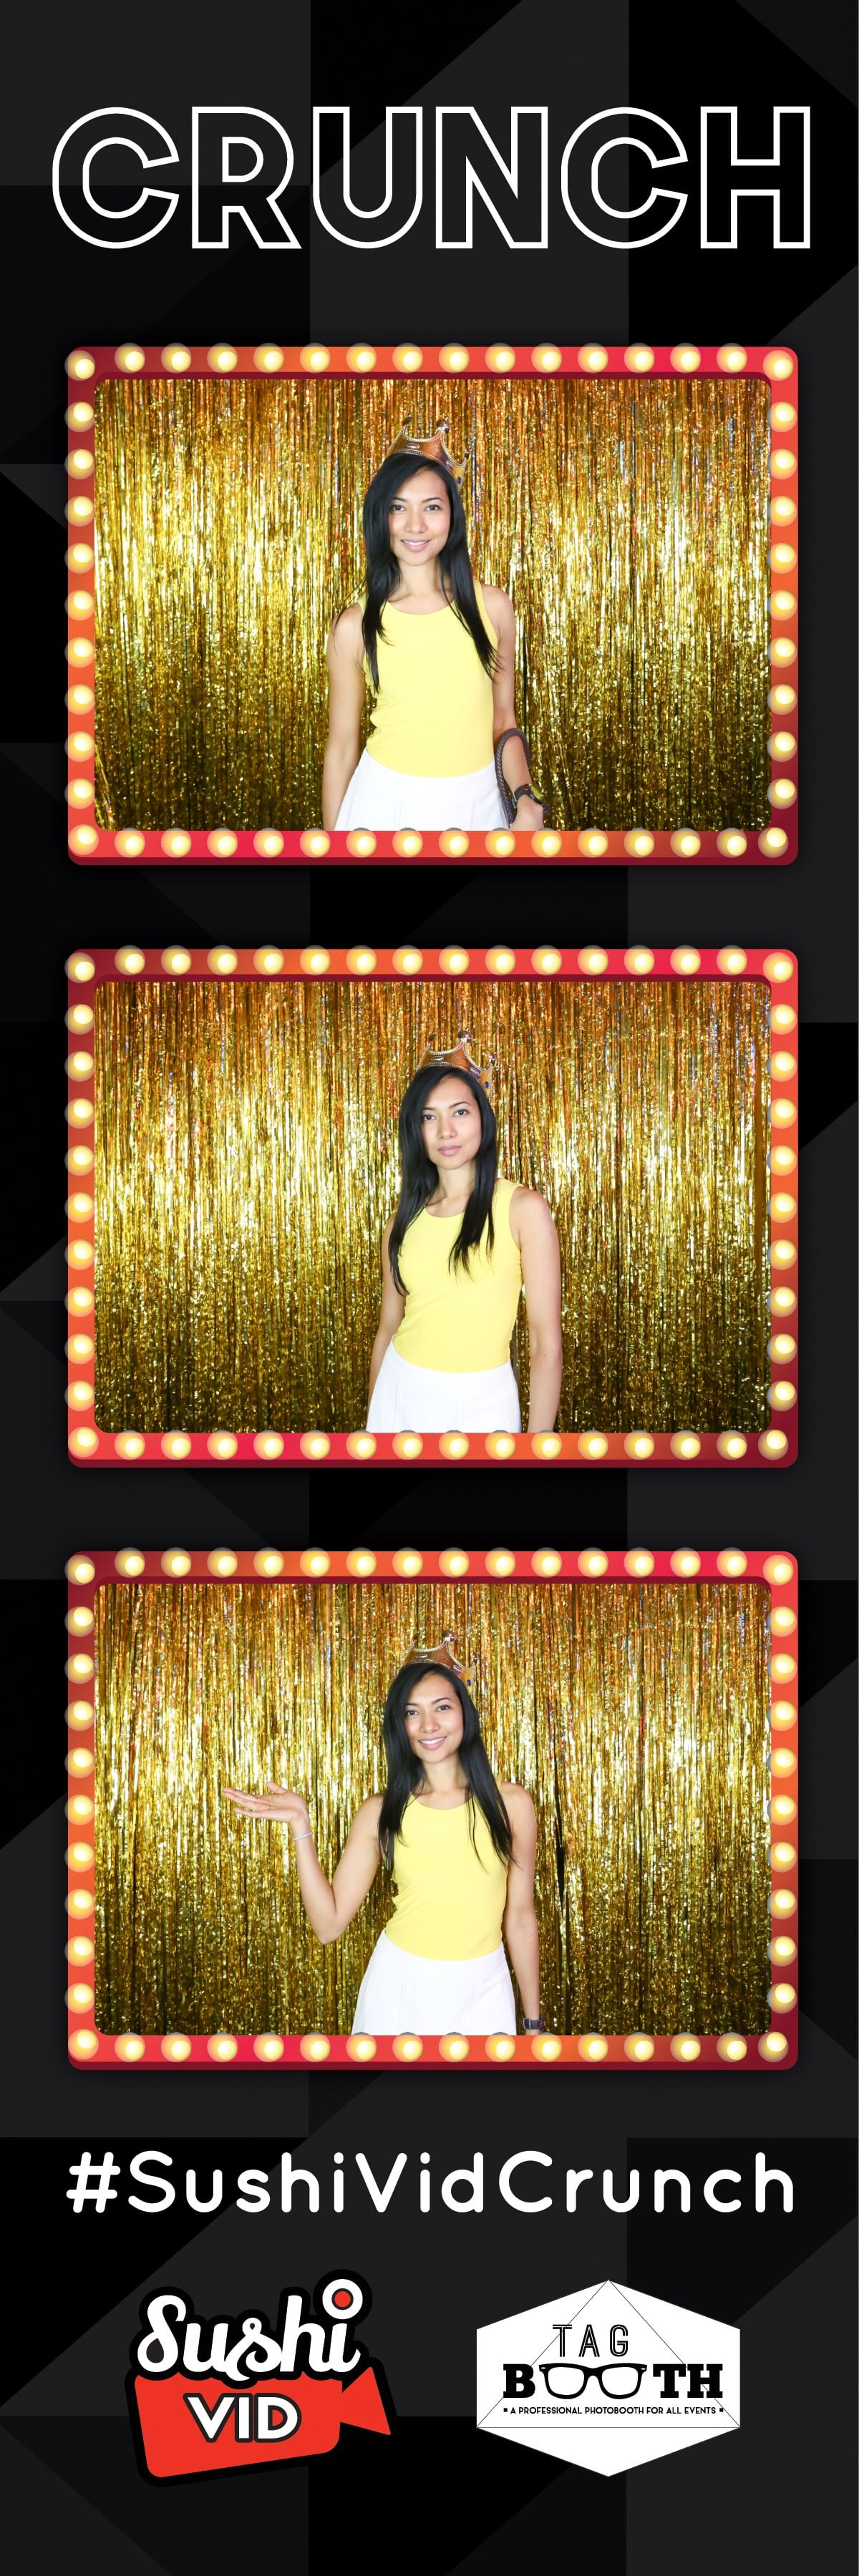 Sushivid+crunch+tagbooth1+29